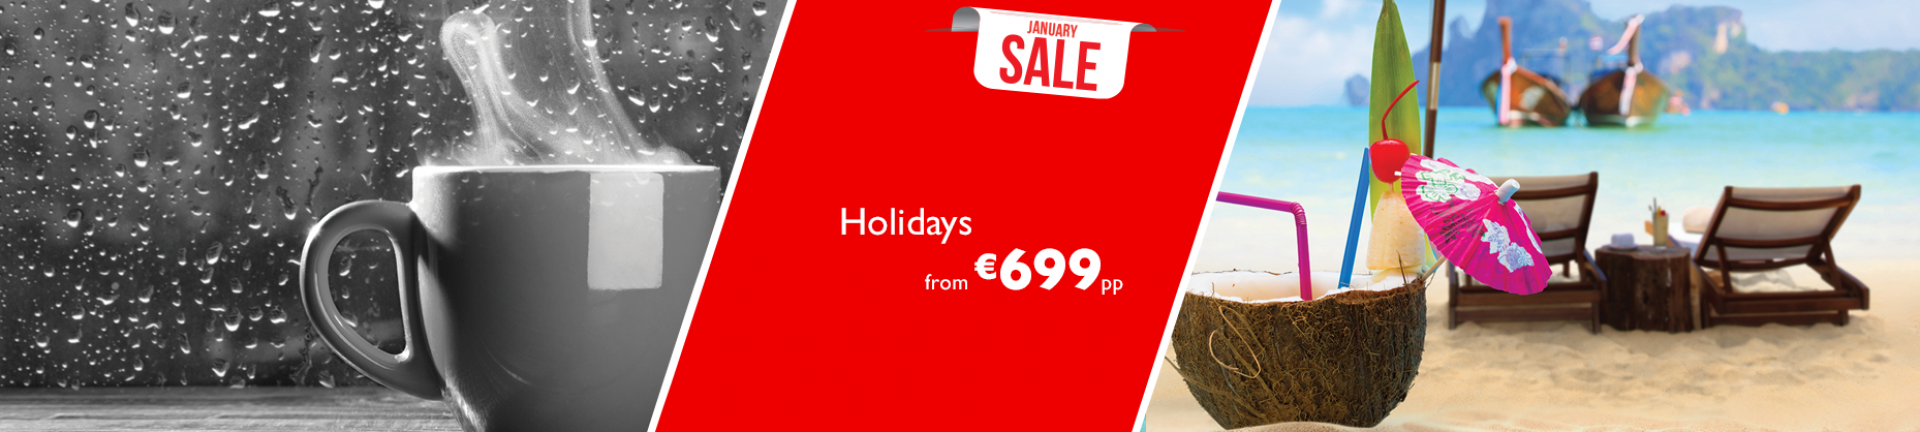 Holidays from €699pp in our January SALE